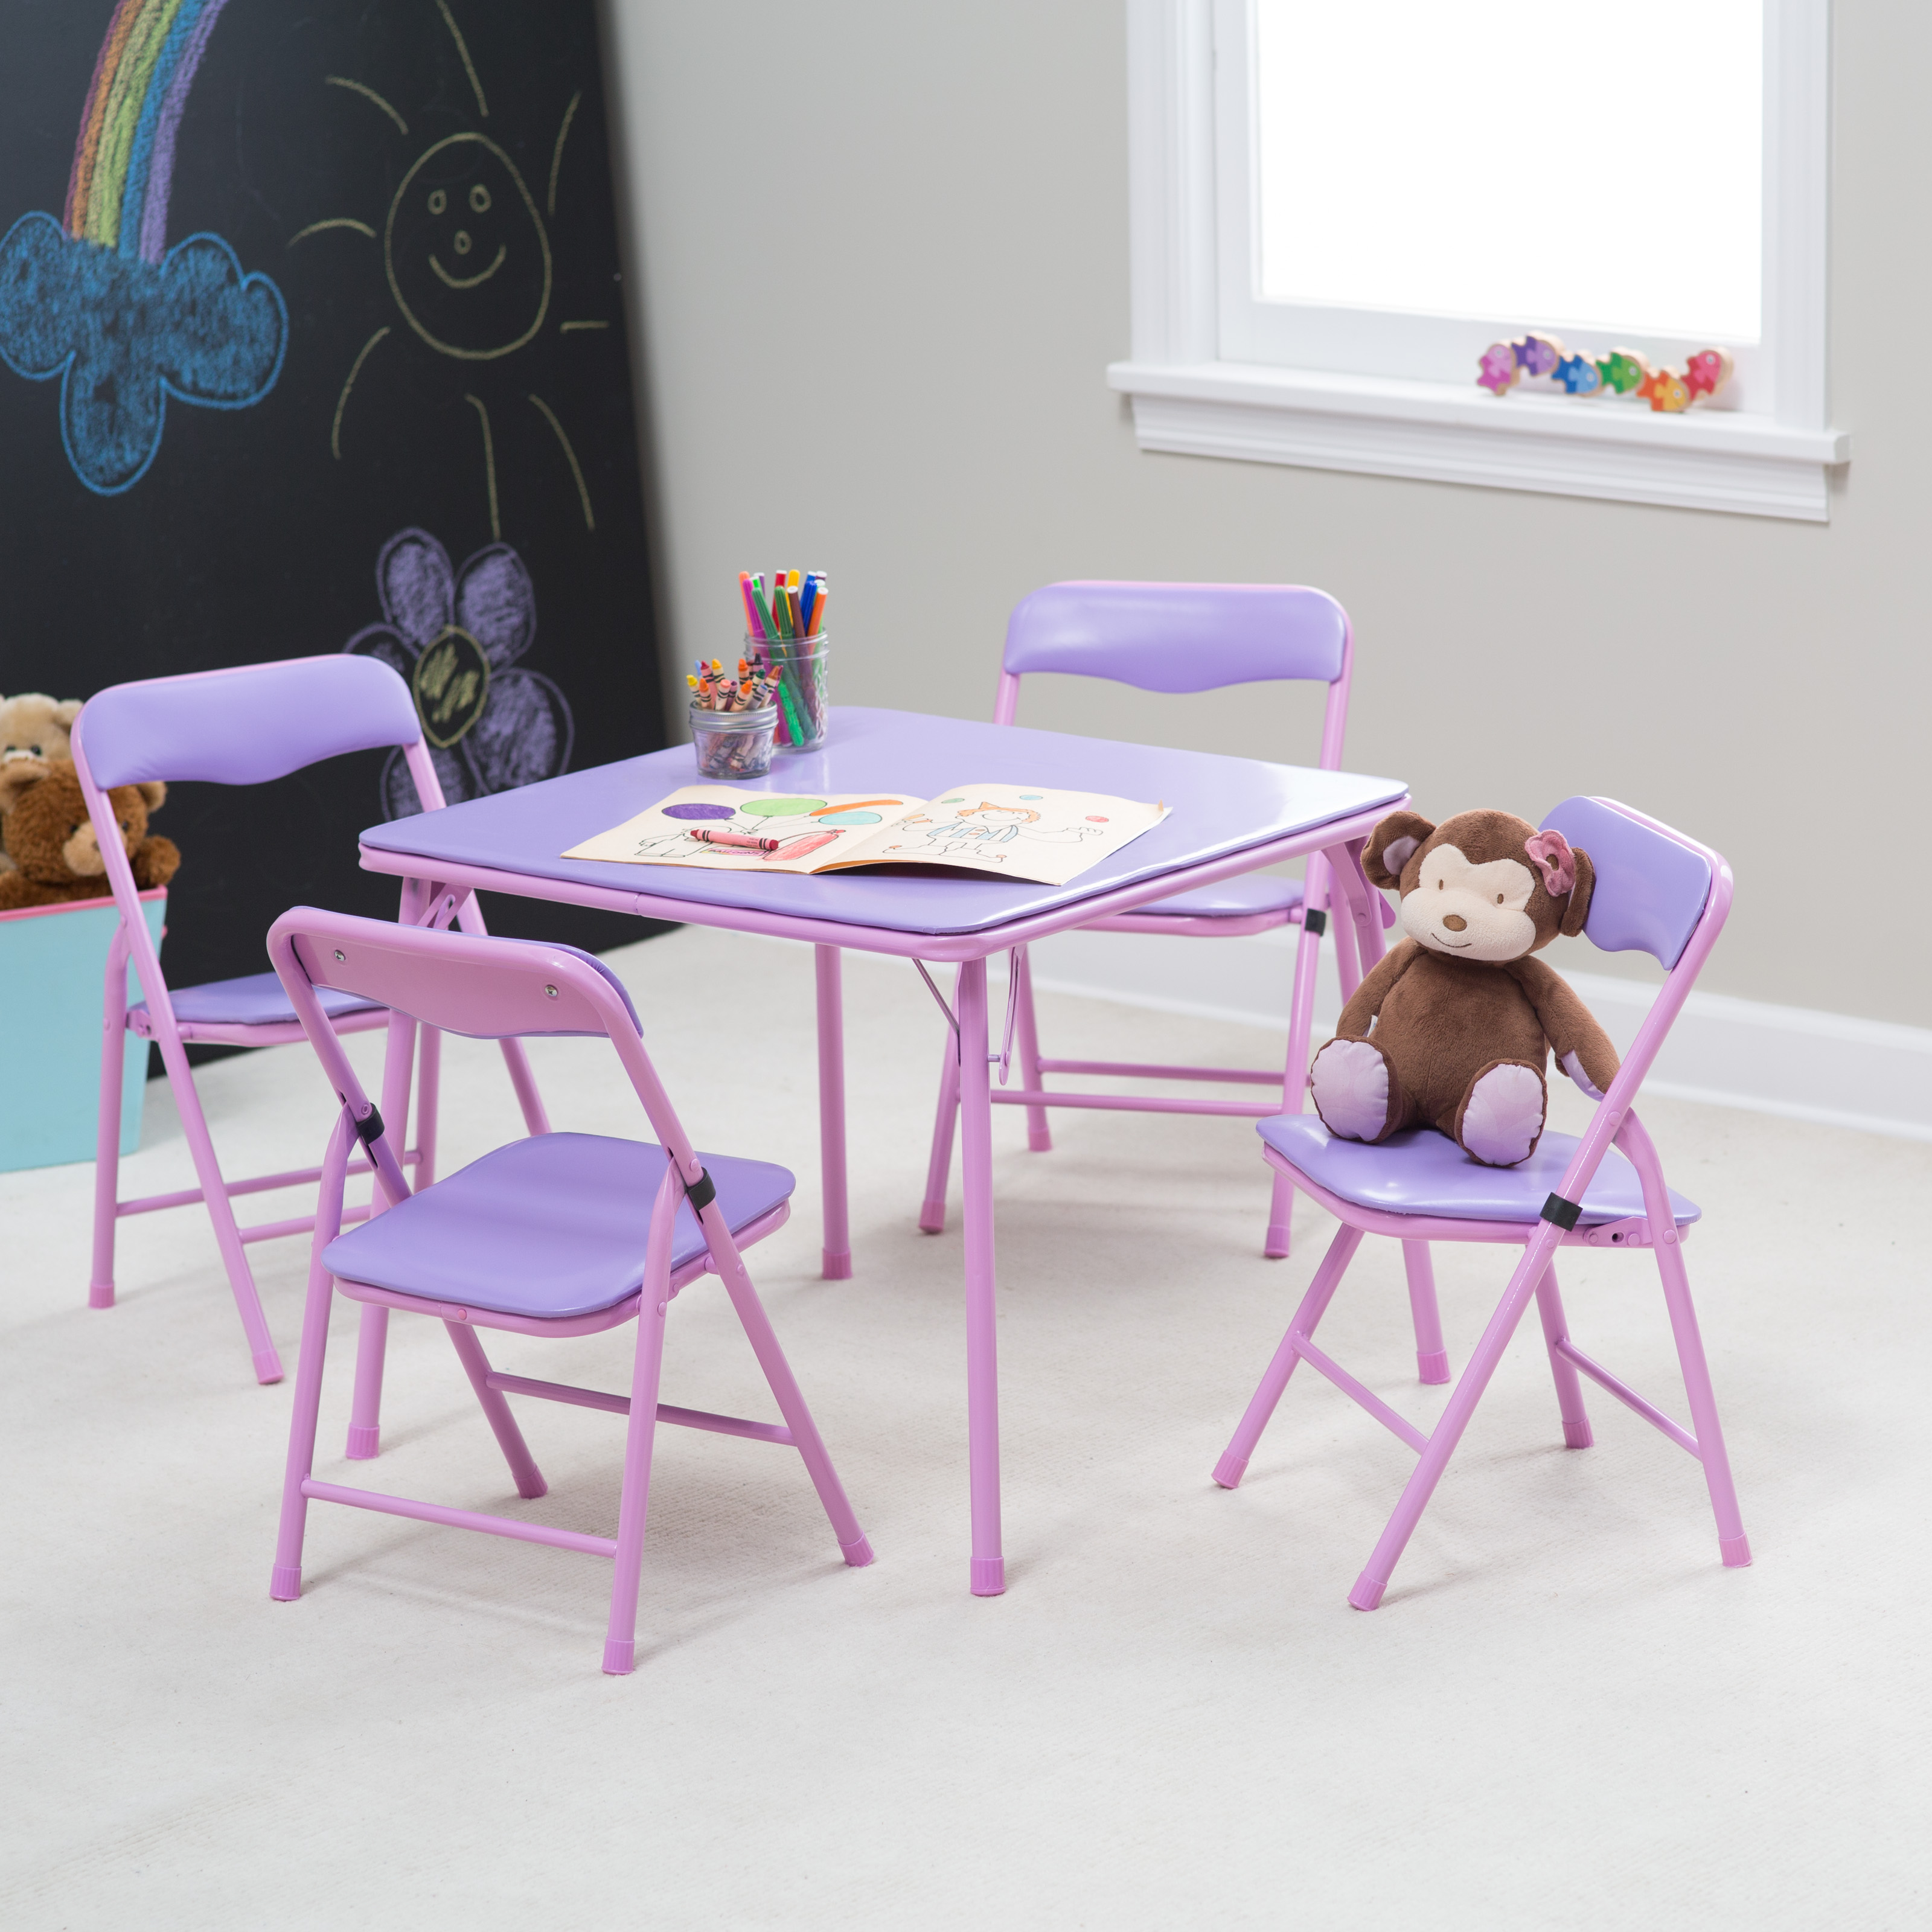 & Showtime Childrens Folding Table and Chair Set | Hayneedle